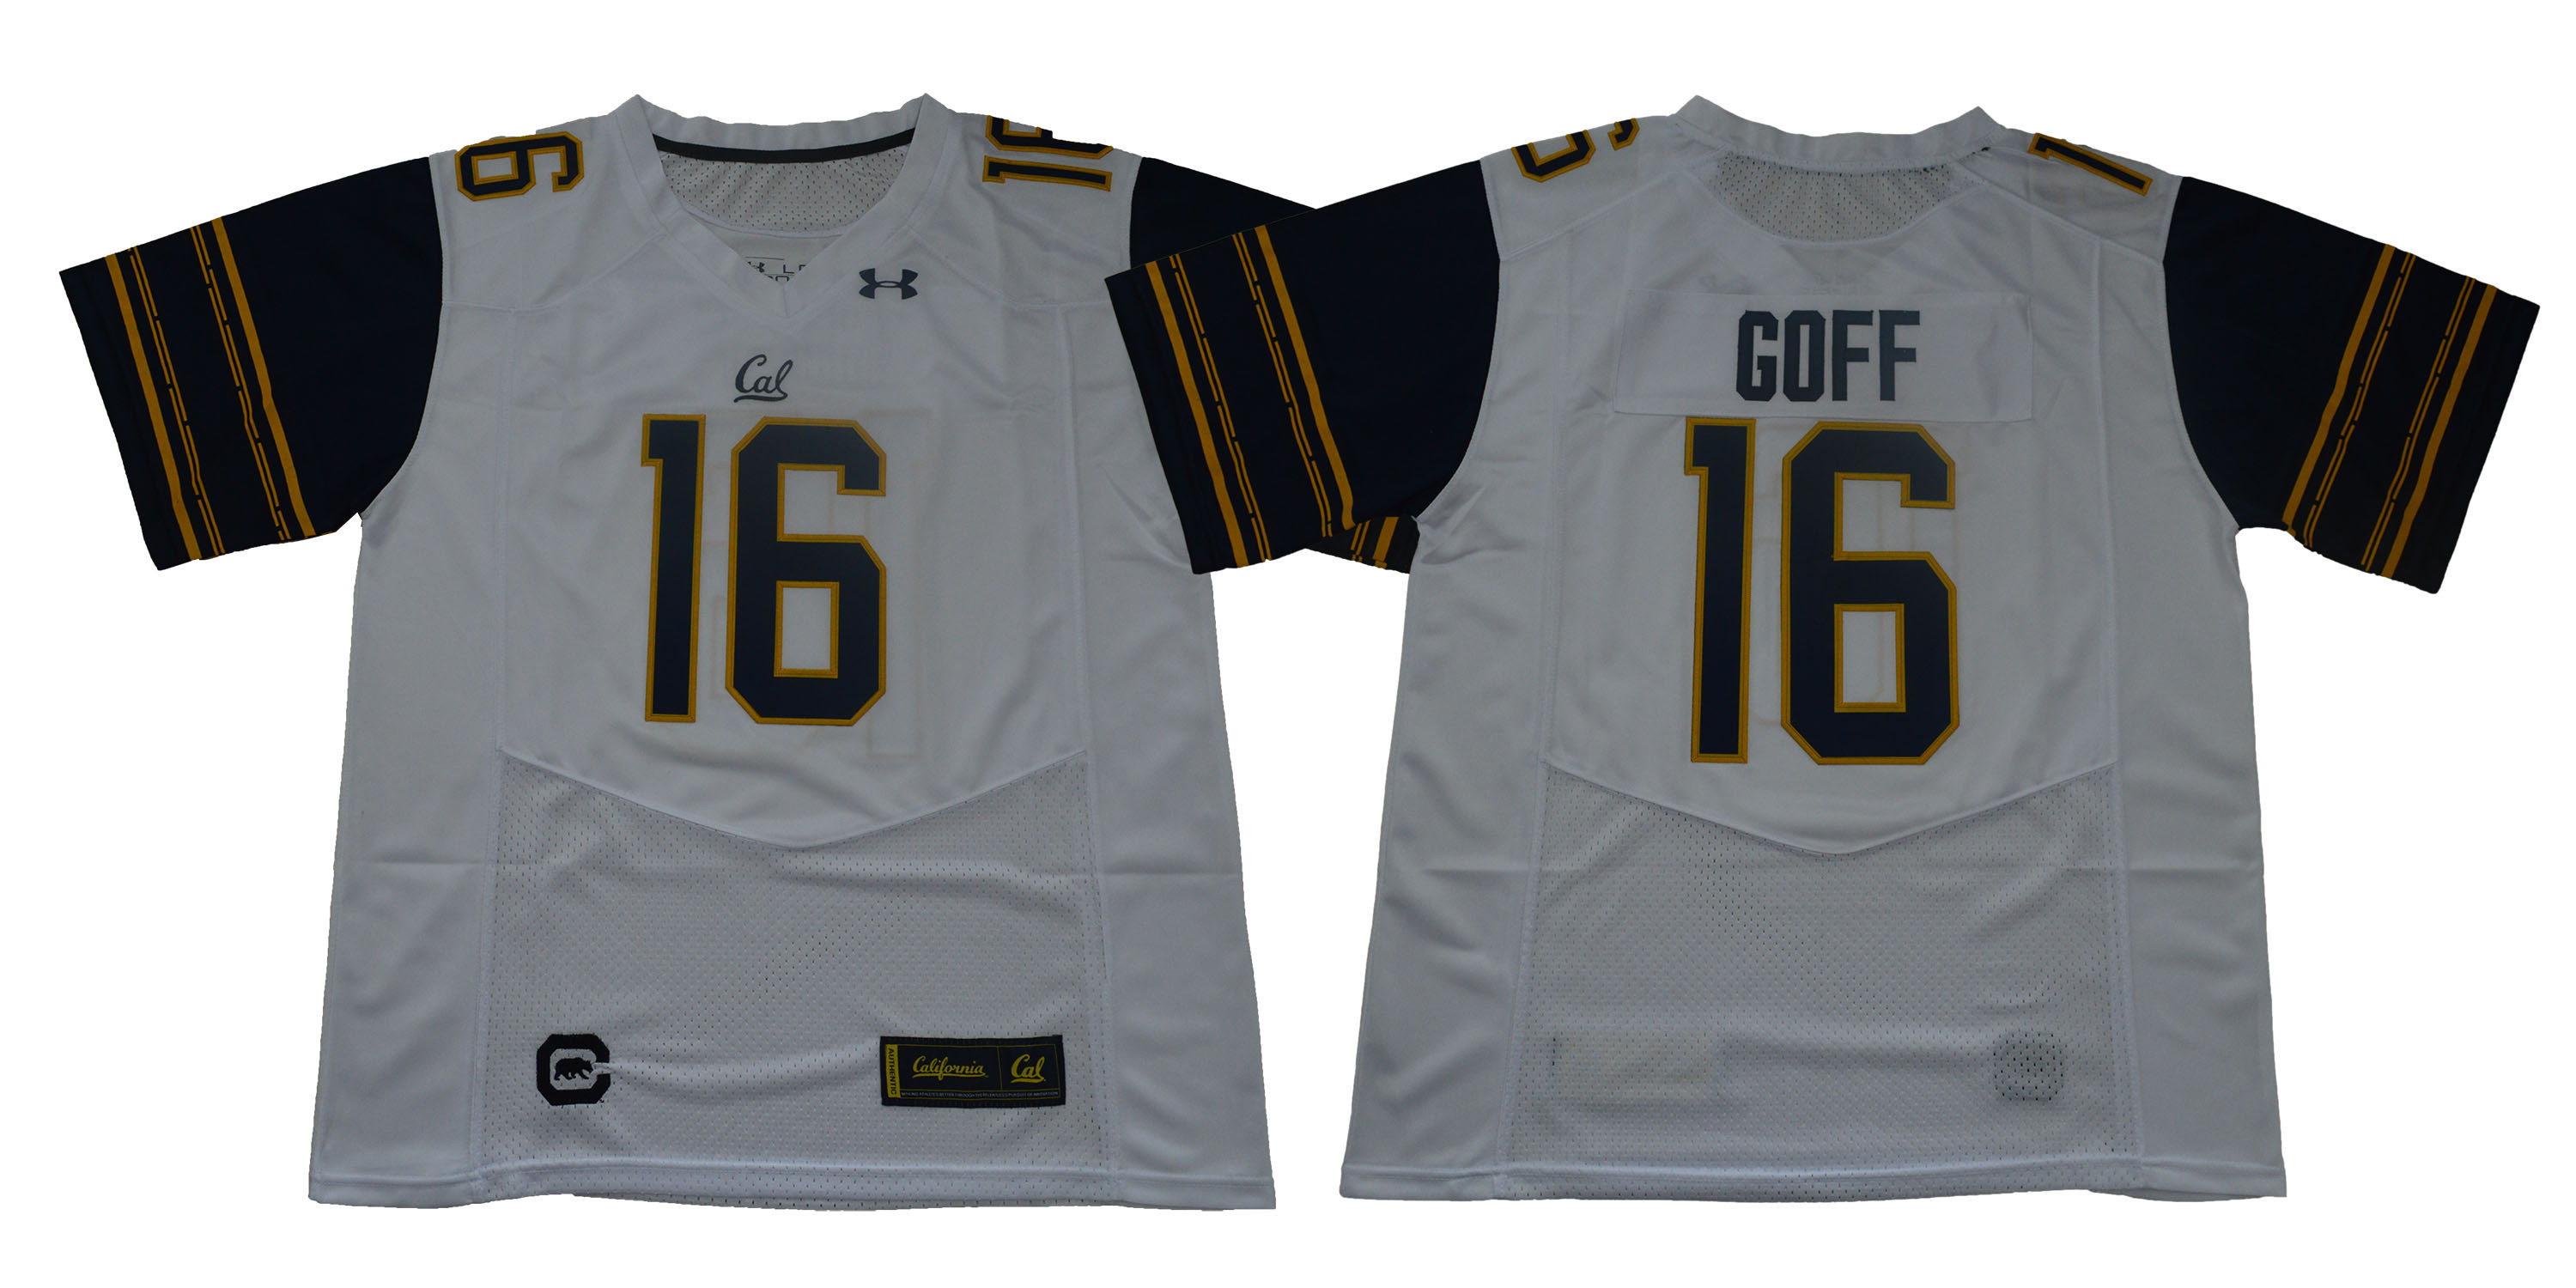 California Golden Bears 16 Jared Goff White College Football Jersey